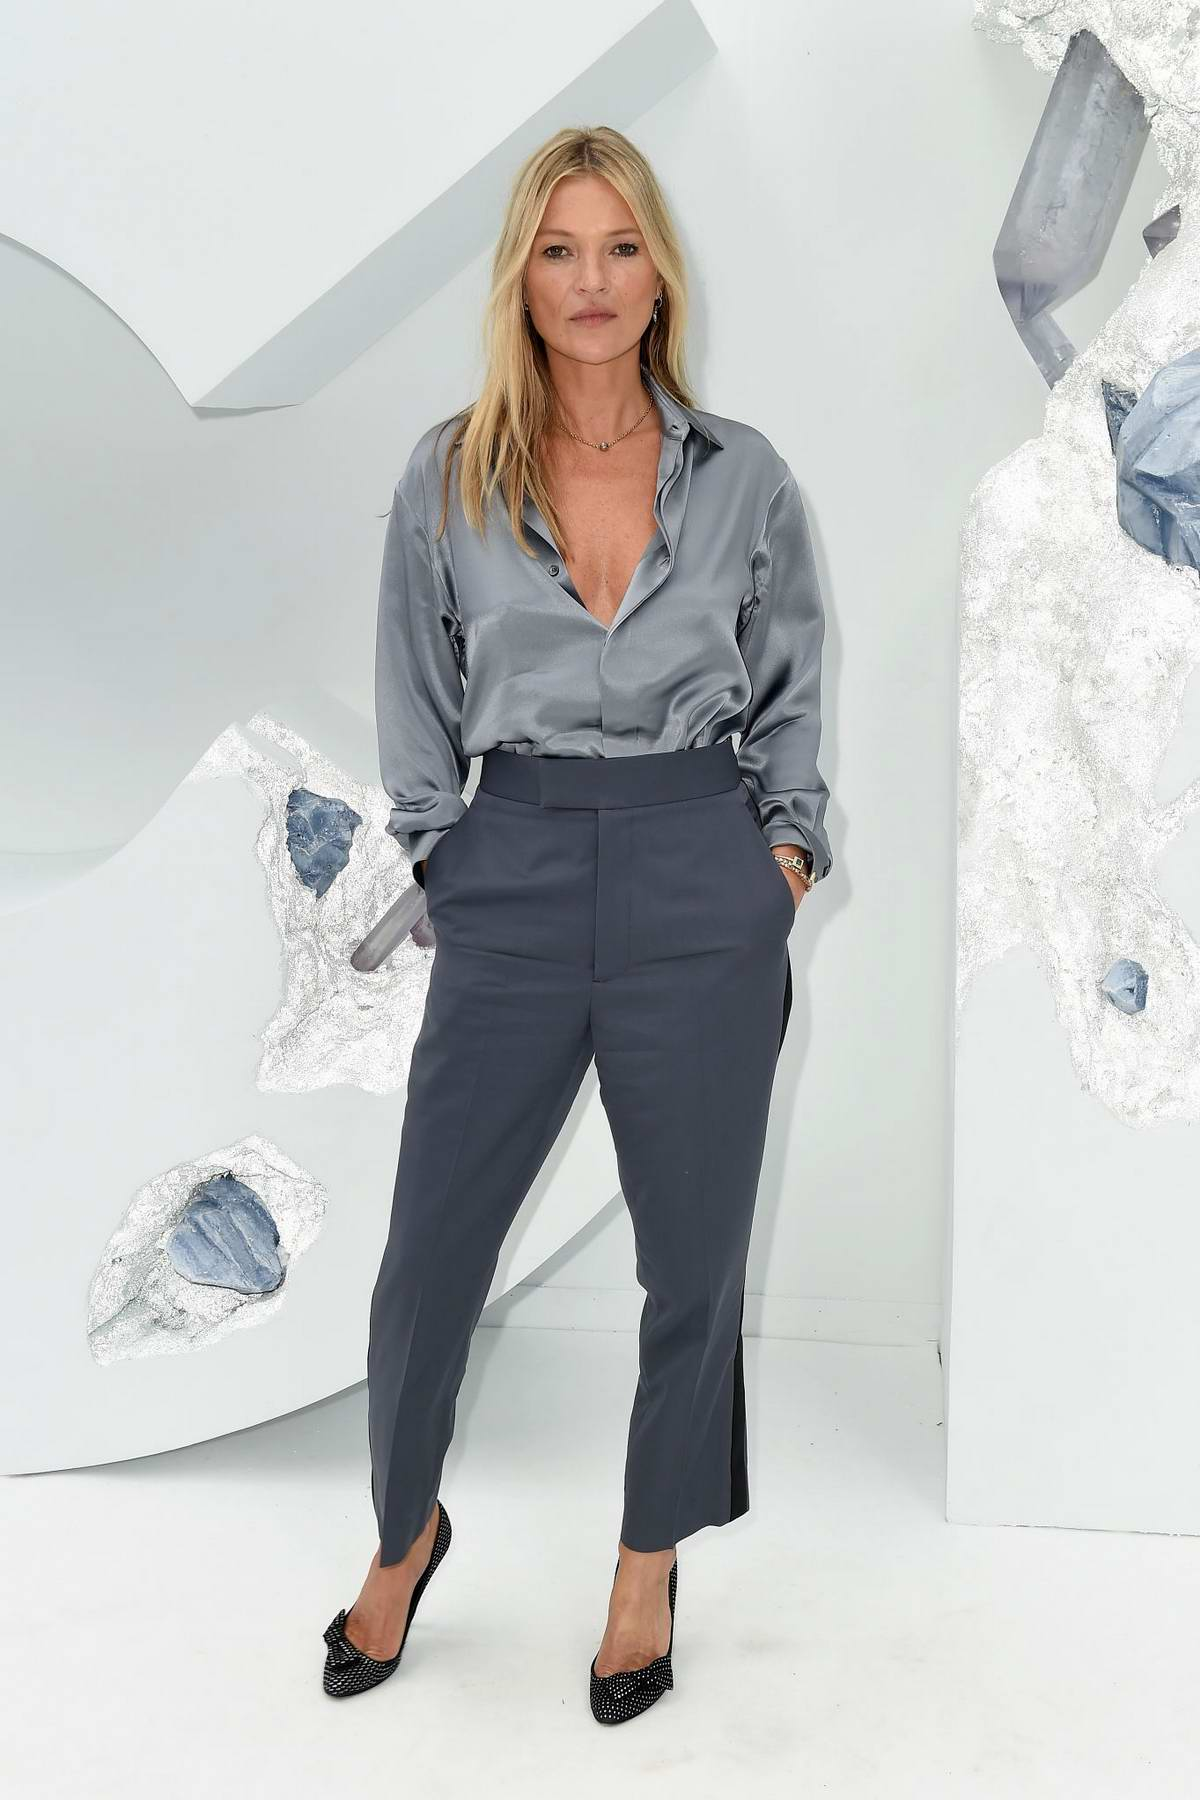 Kate Moss attends the Dior Homme Menswear Spring/Summer 2020 show during Paris Fashion Week in Paris, France